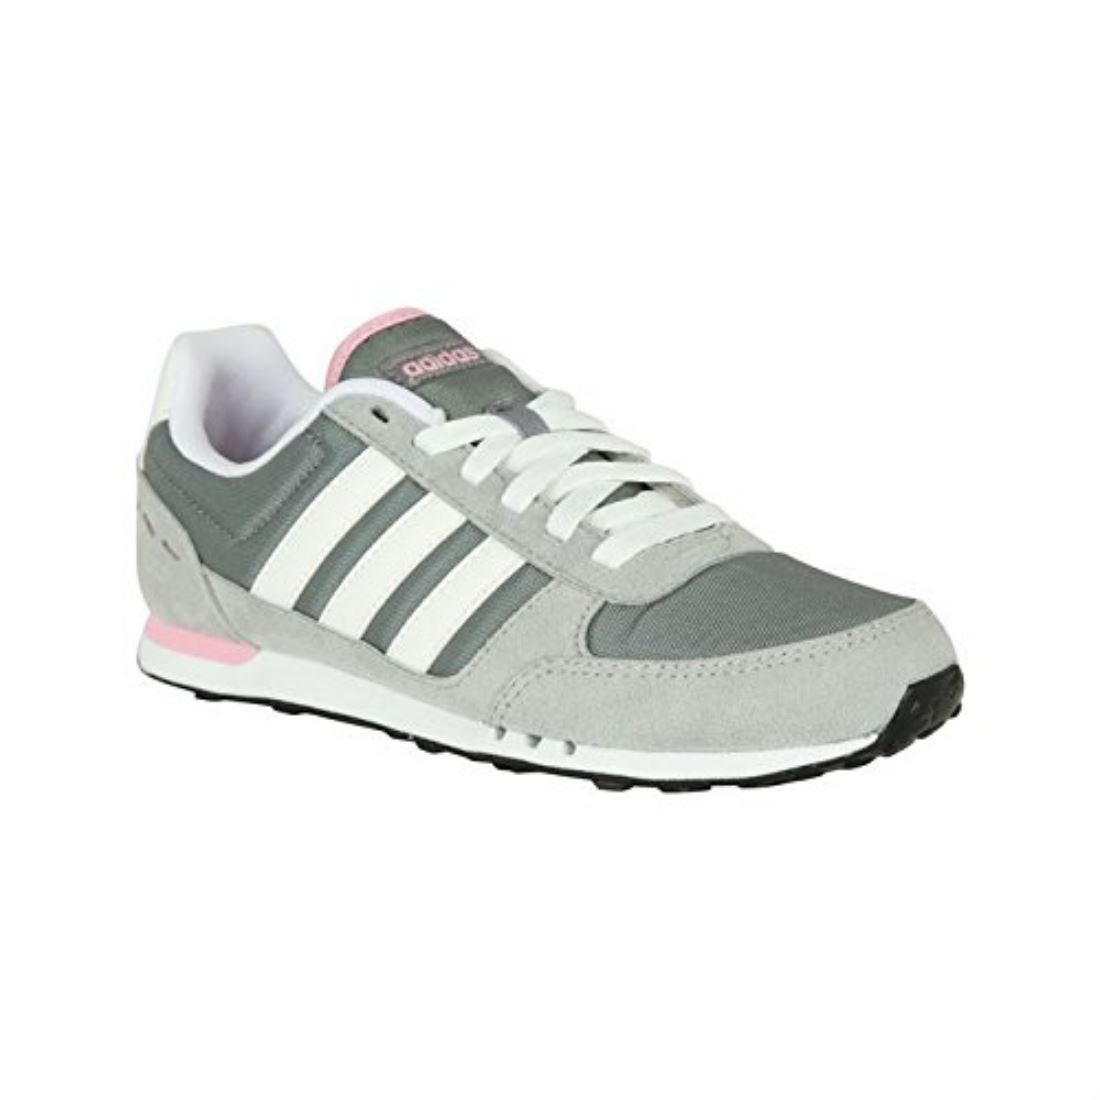 buy cheap online adidas neo ortholite fine shoes. Black Bedroom Furniture Sets. Home Design Ideas